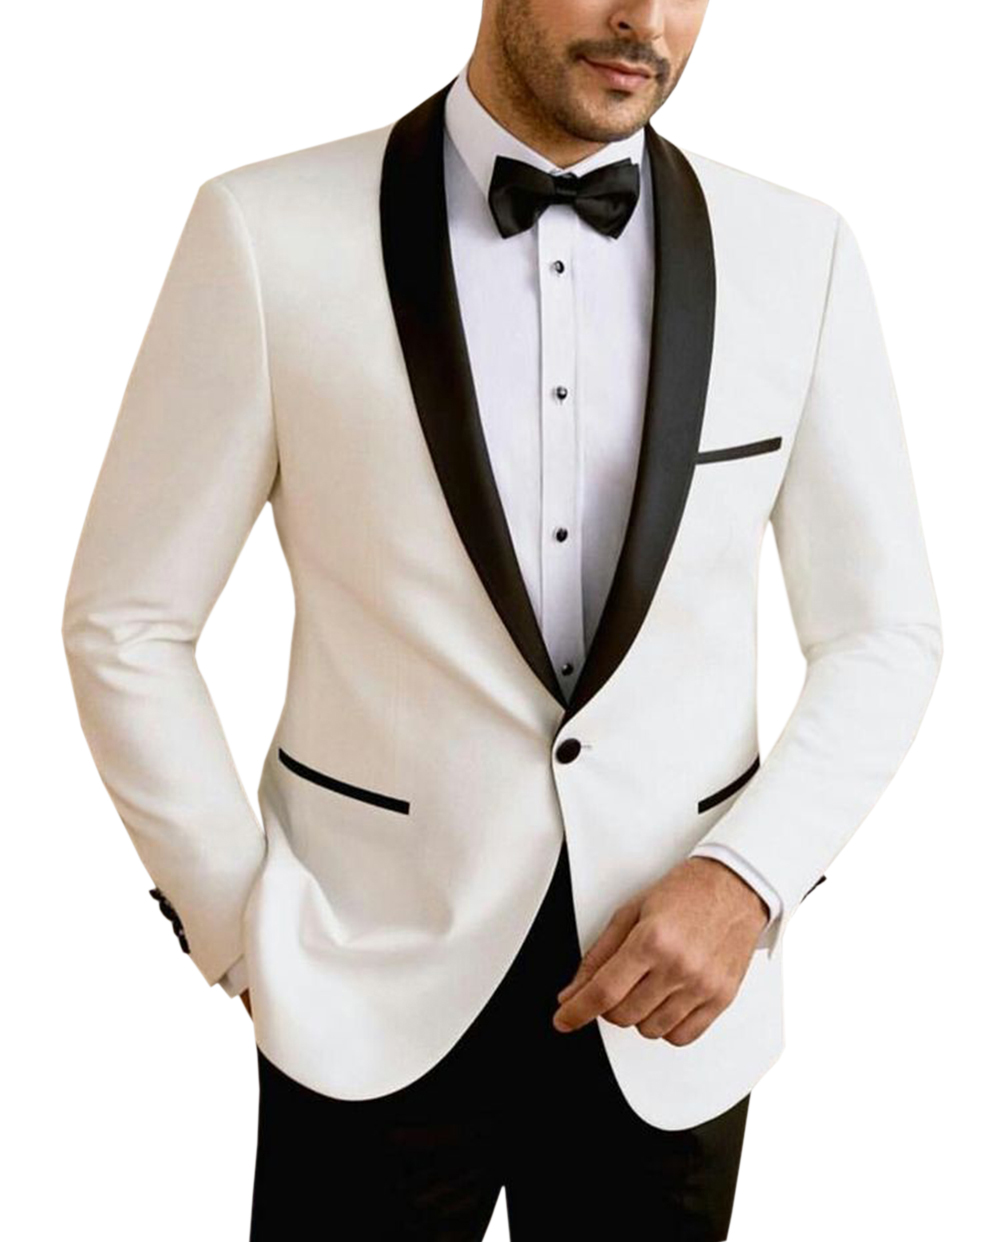 Solovedress Mens Suit Premium Prom Wedding Tuxedos 2 Piece Blazer & Trousers Modern Slim Fit Jacket Vest Trousers Dinner Wedding